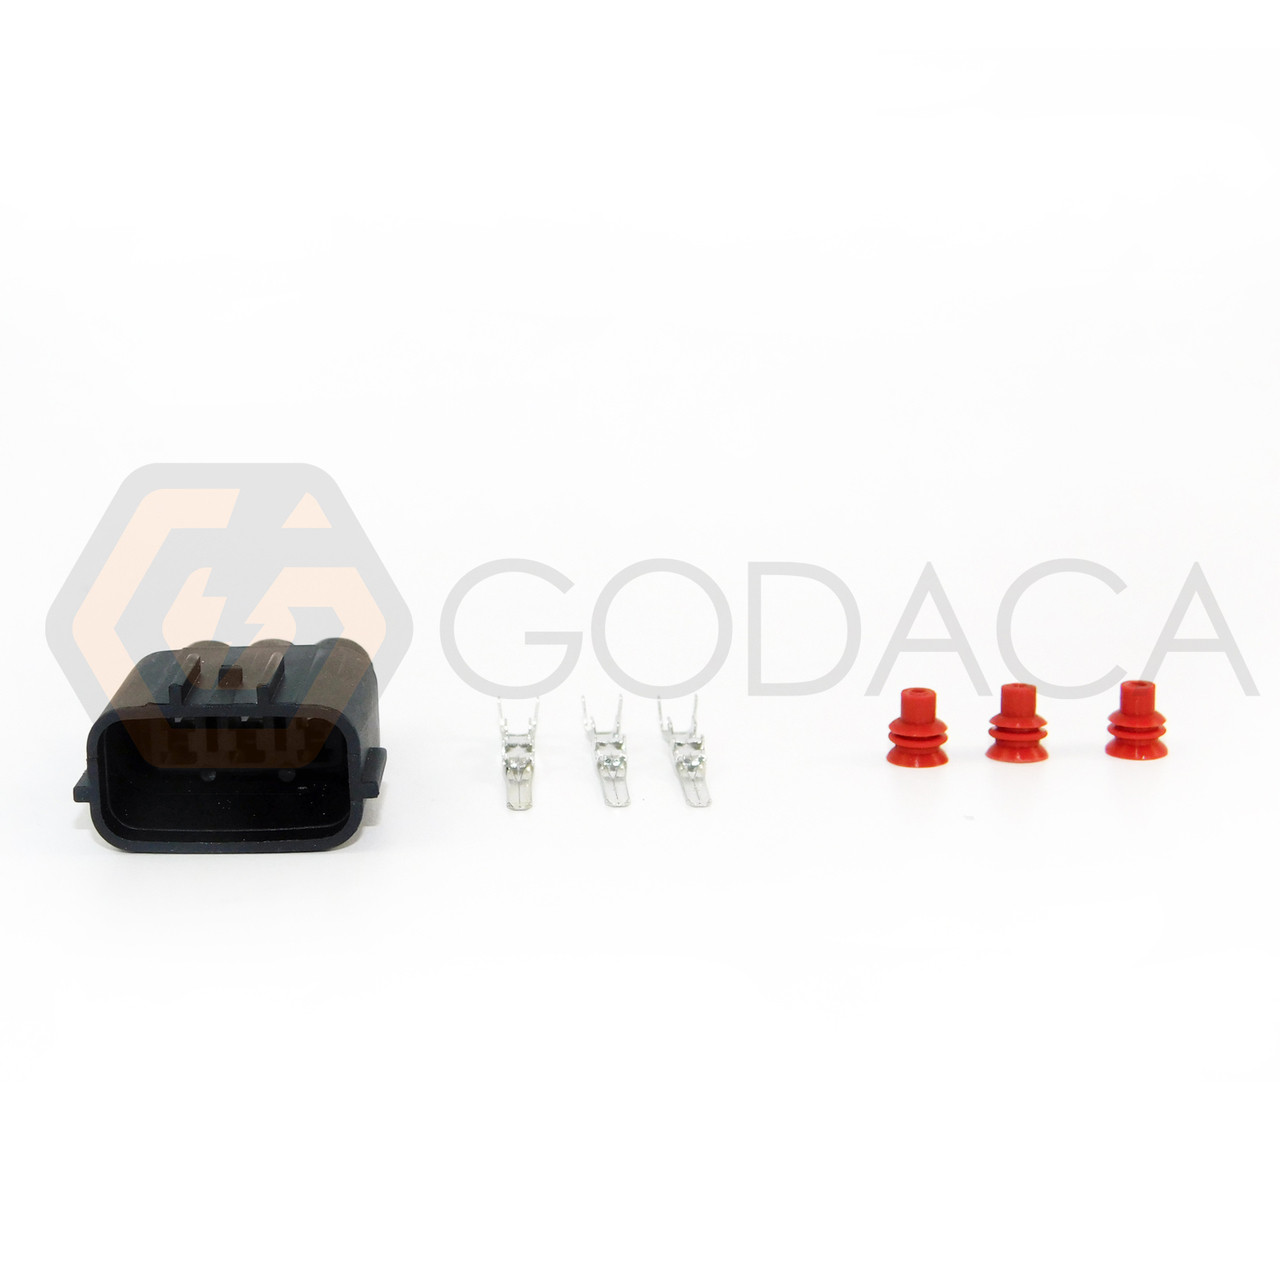 1x male connector for mazda nissan 3-pin coil plug rb25 sr20 w/out wire -  godaca, llc